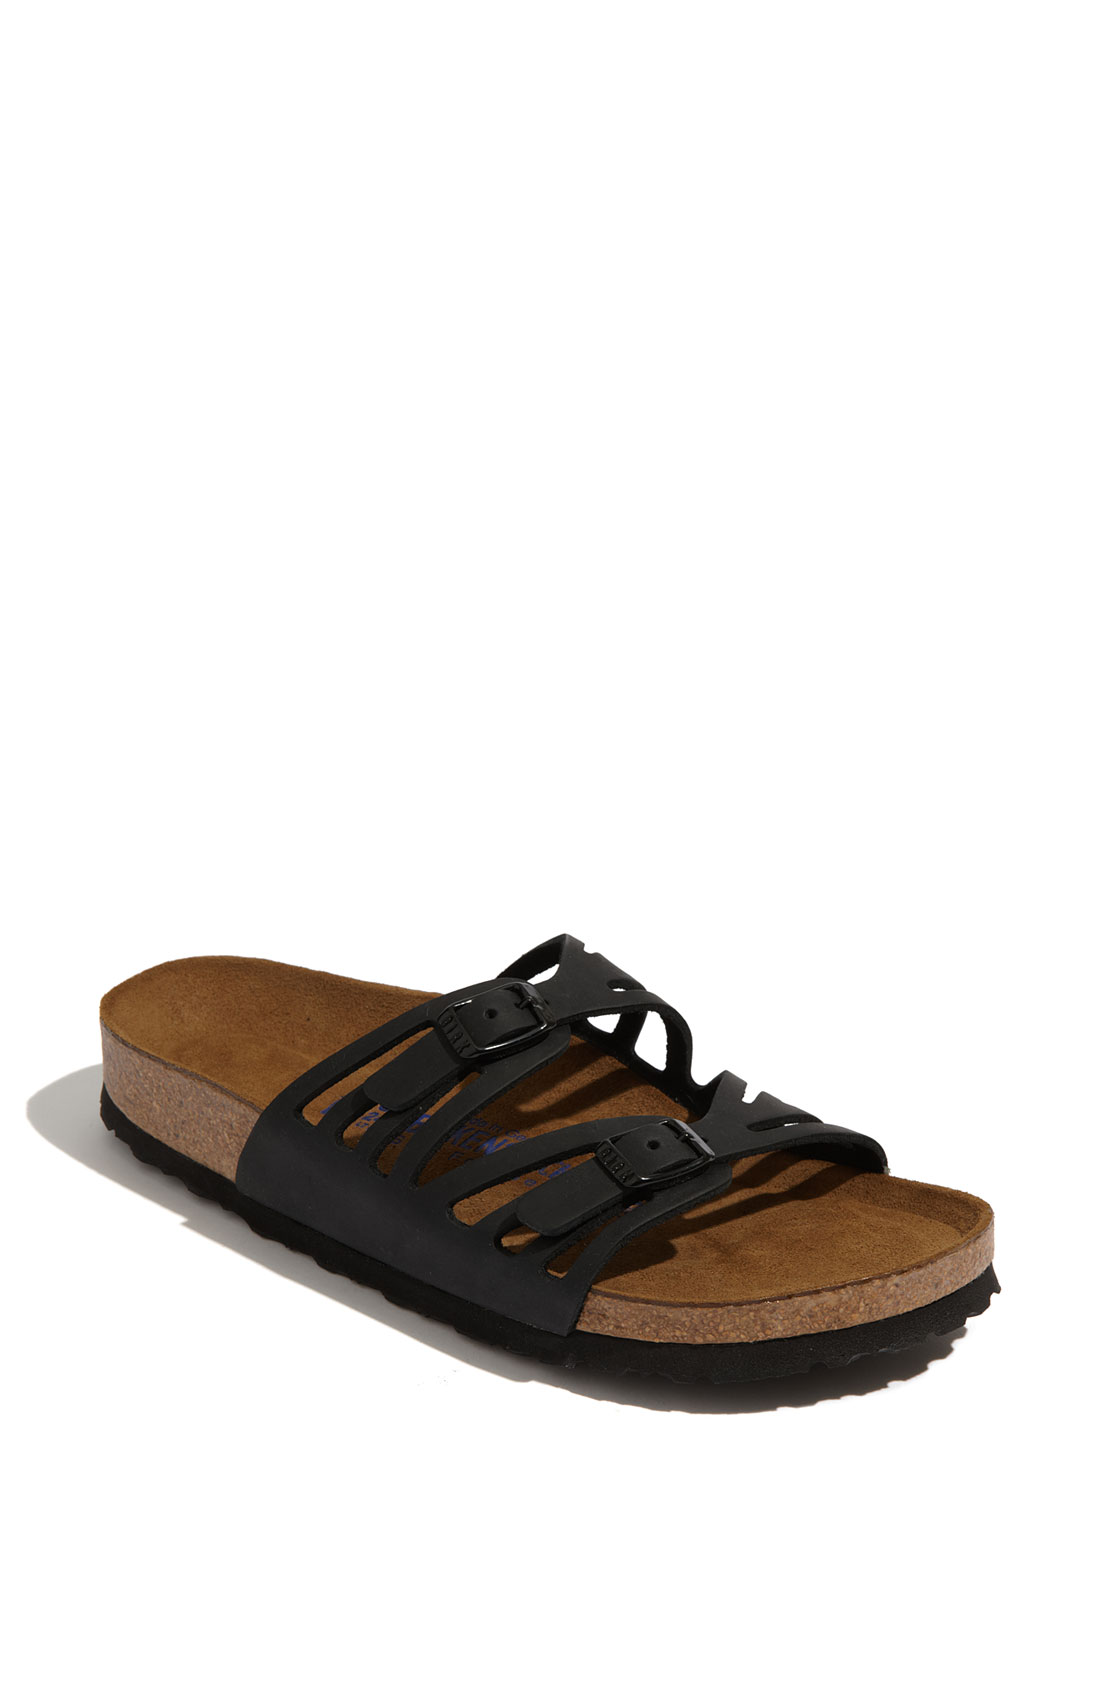 Lyst - Birkenstock Granada Soft Footbed Sandal in Black